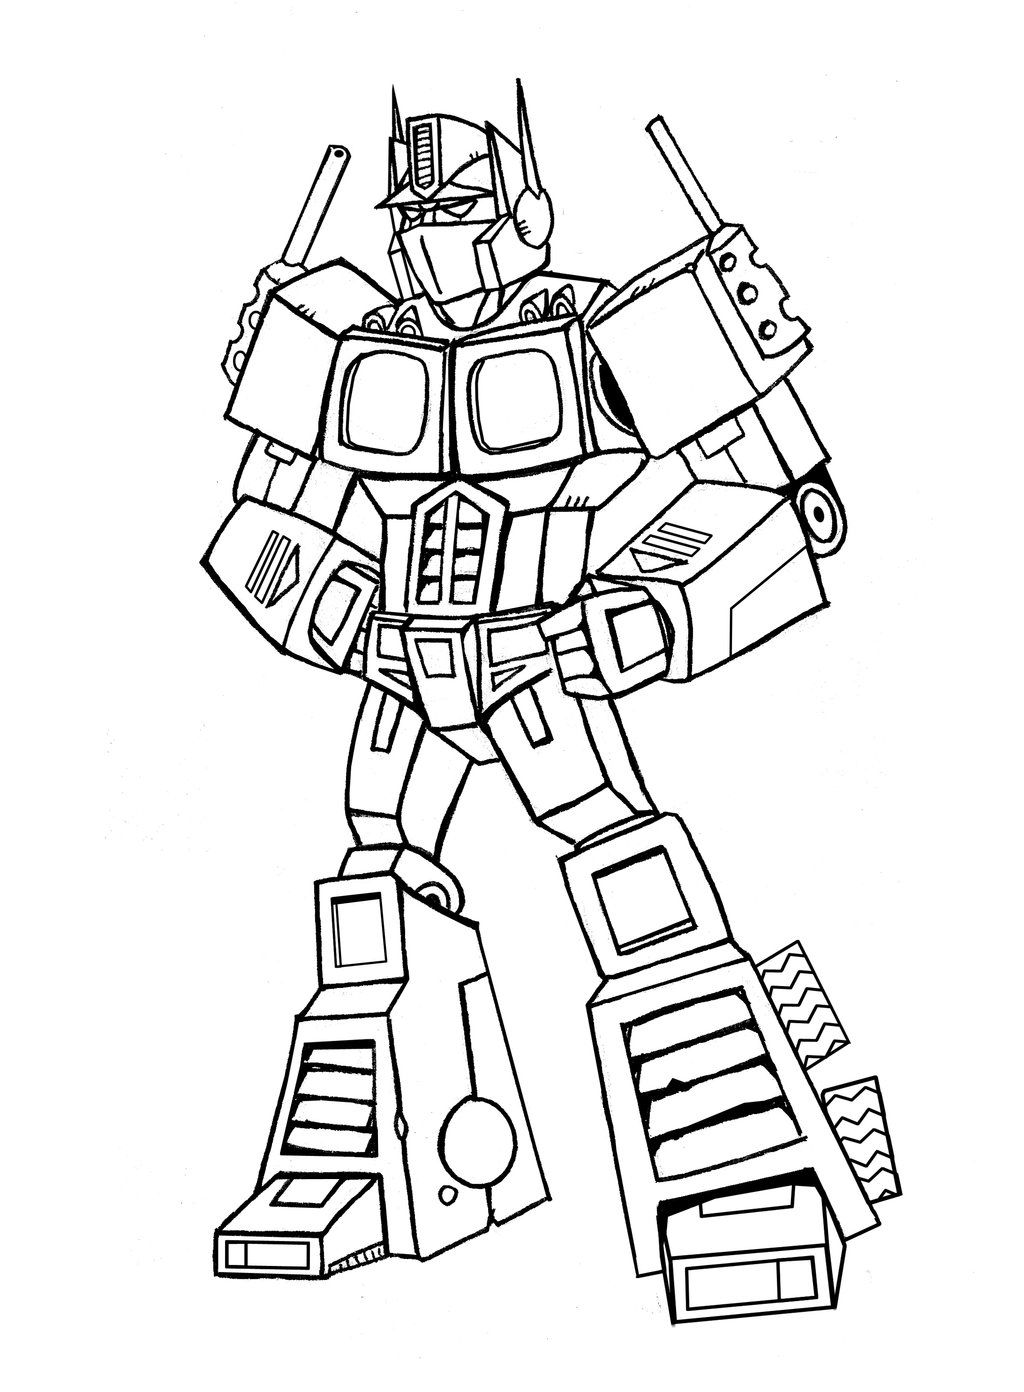 Transformers rescue bots coloring pages tshirt ideas for Transformers rescue bots coloring pages